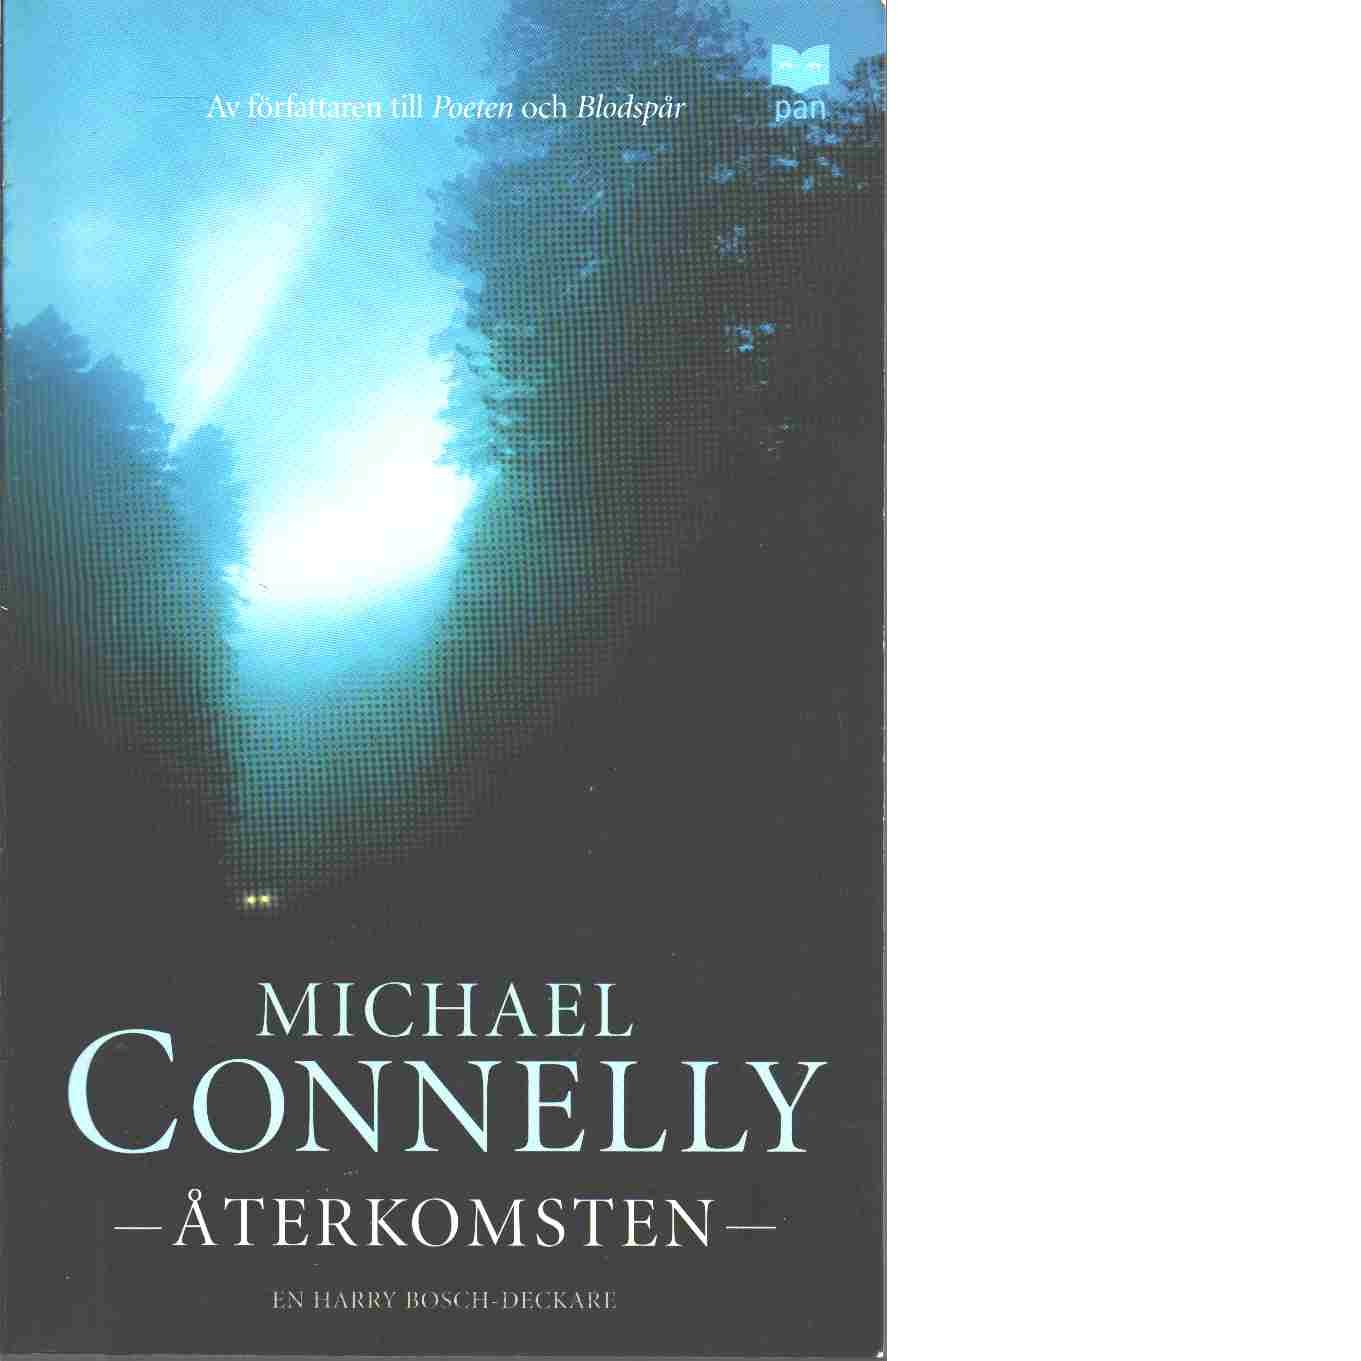 Återkomsten - Connelly, Michael